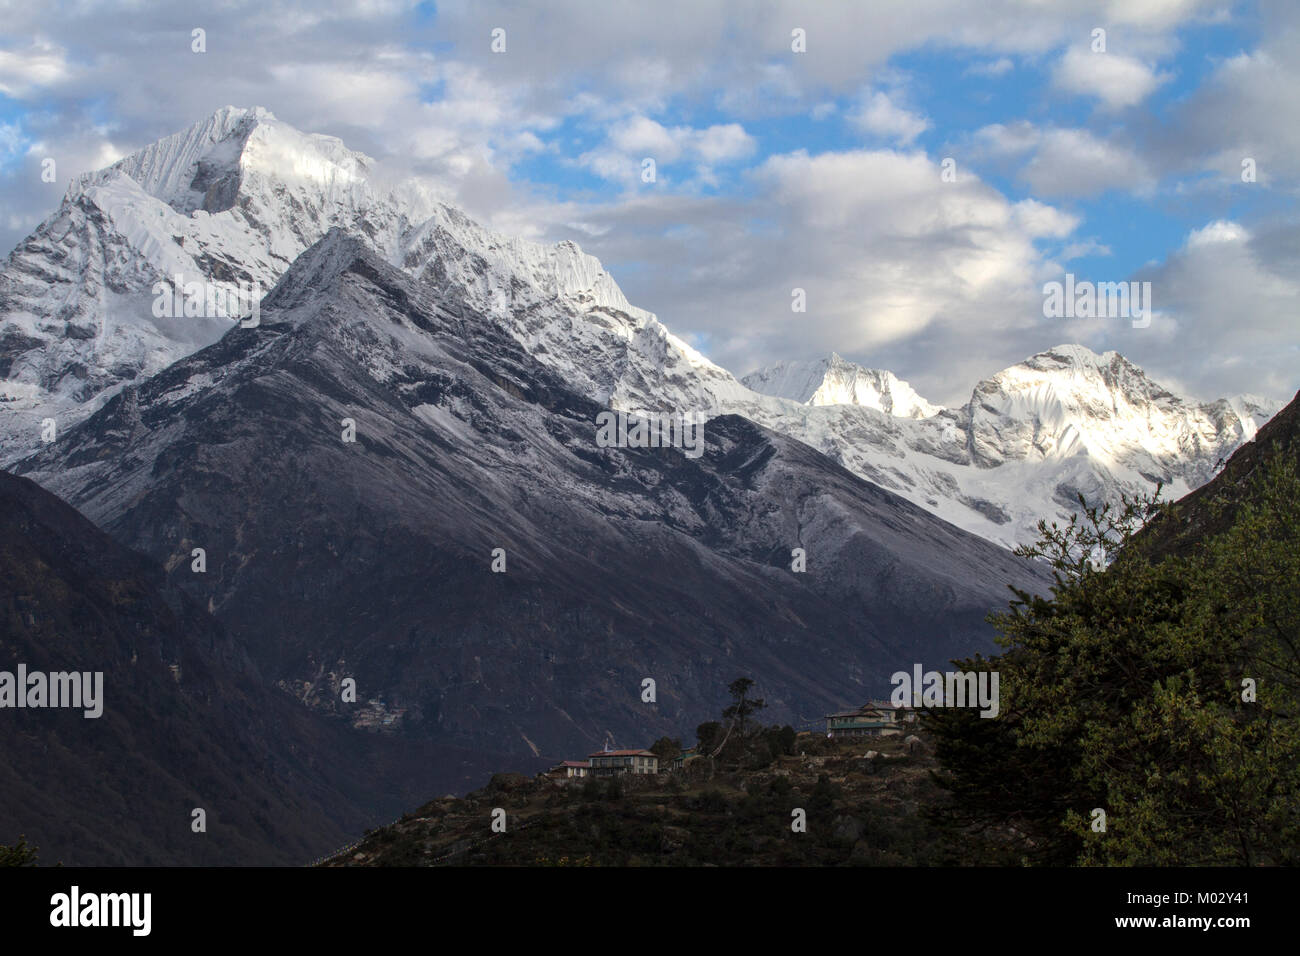 Mountain view in Everest region of Nepal. - Stock Image